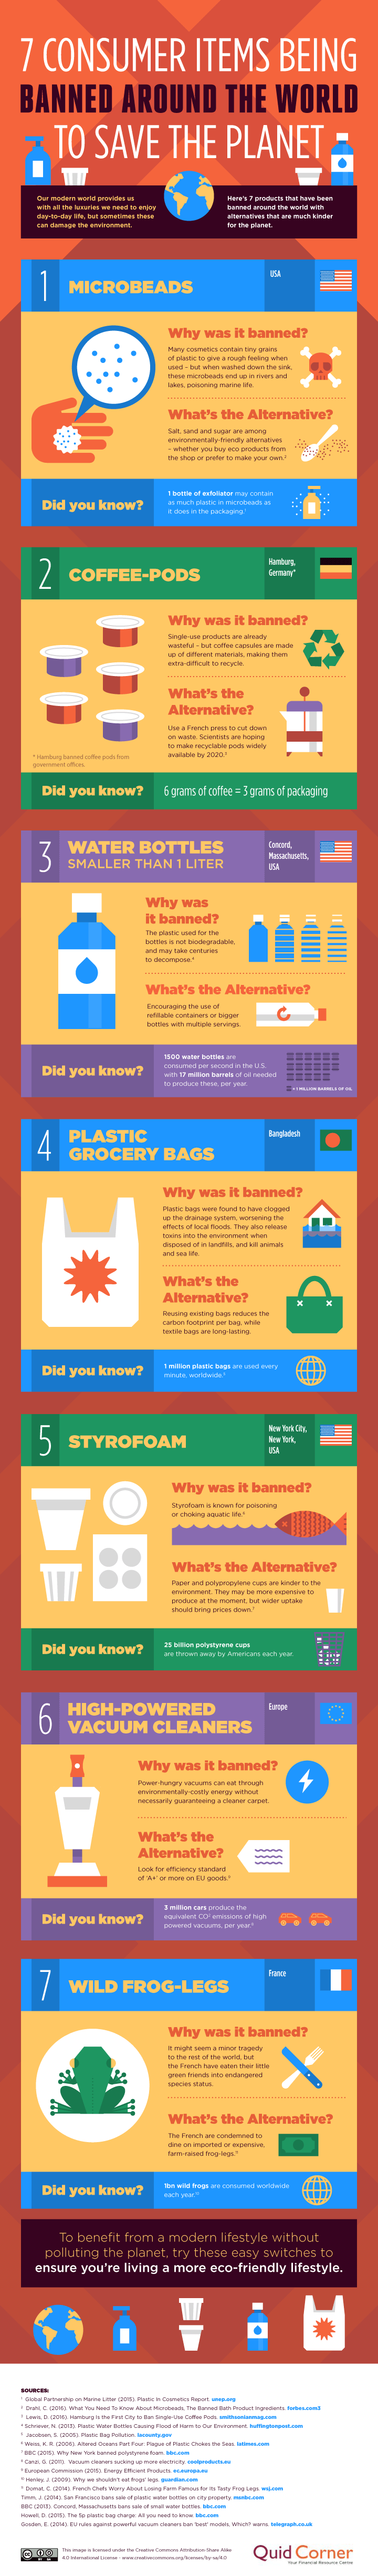 7 Consumer Items Being Banned Around the World to Save the Planet Infographic